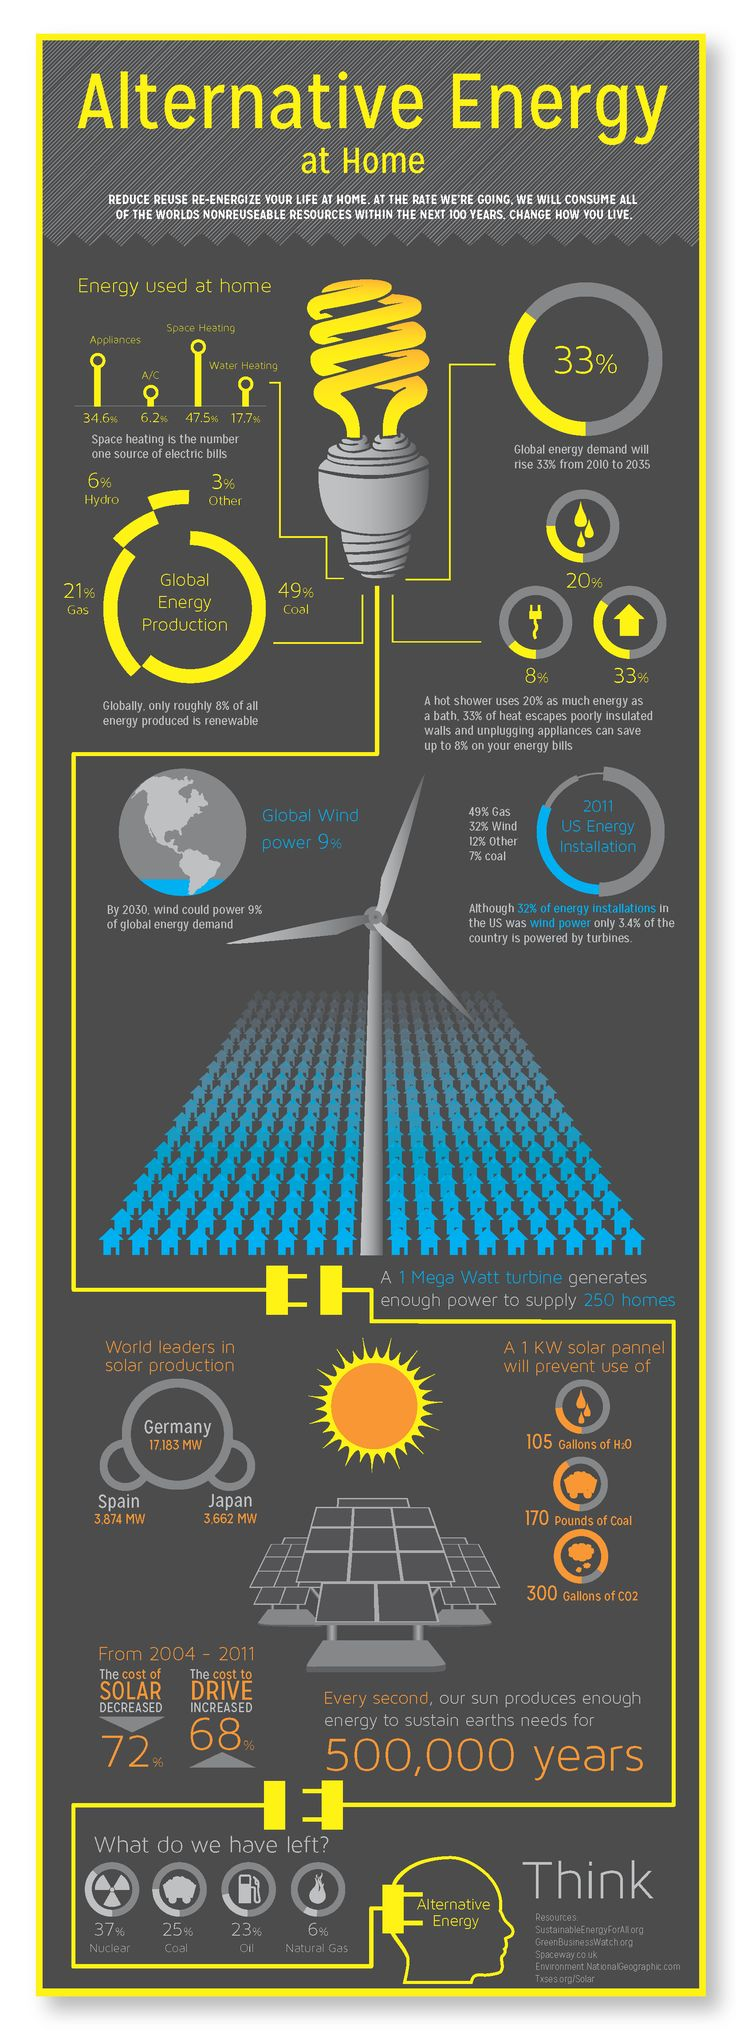 Alternative Energy Infographic Learn How To Reduce Your Energy Bill @ http://www.earth4energymanual.com/reduce-your-electricity-bill/